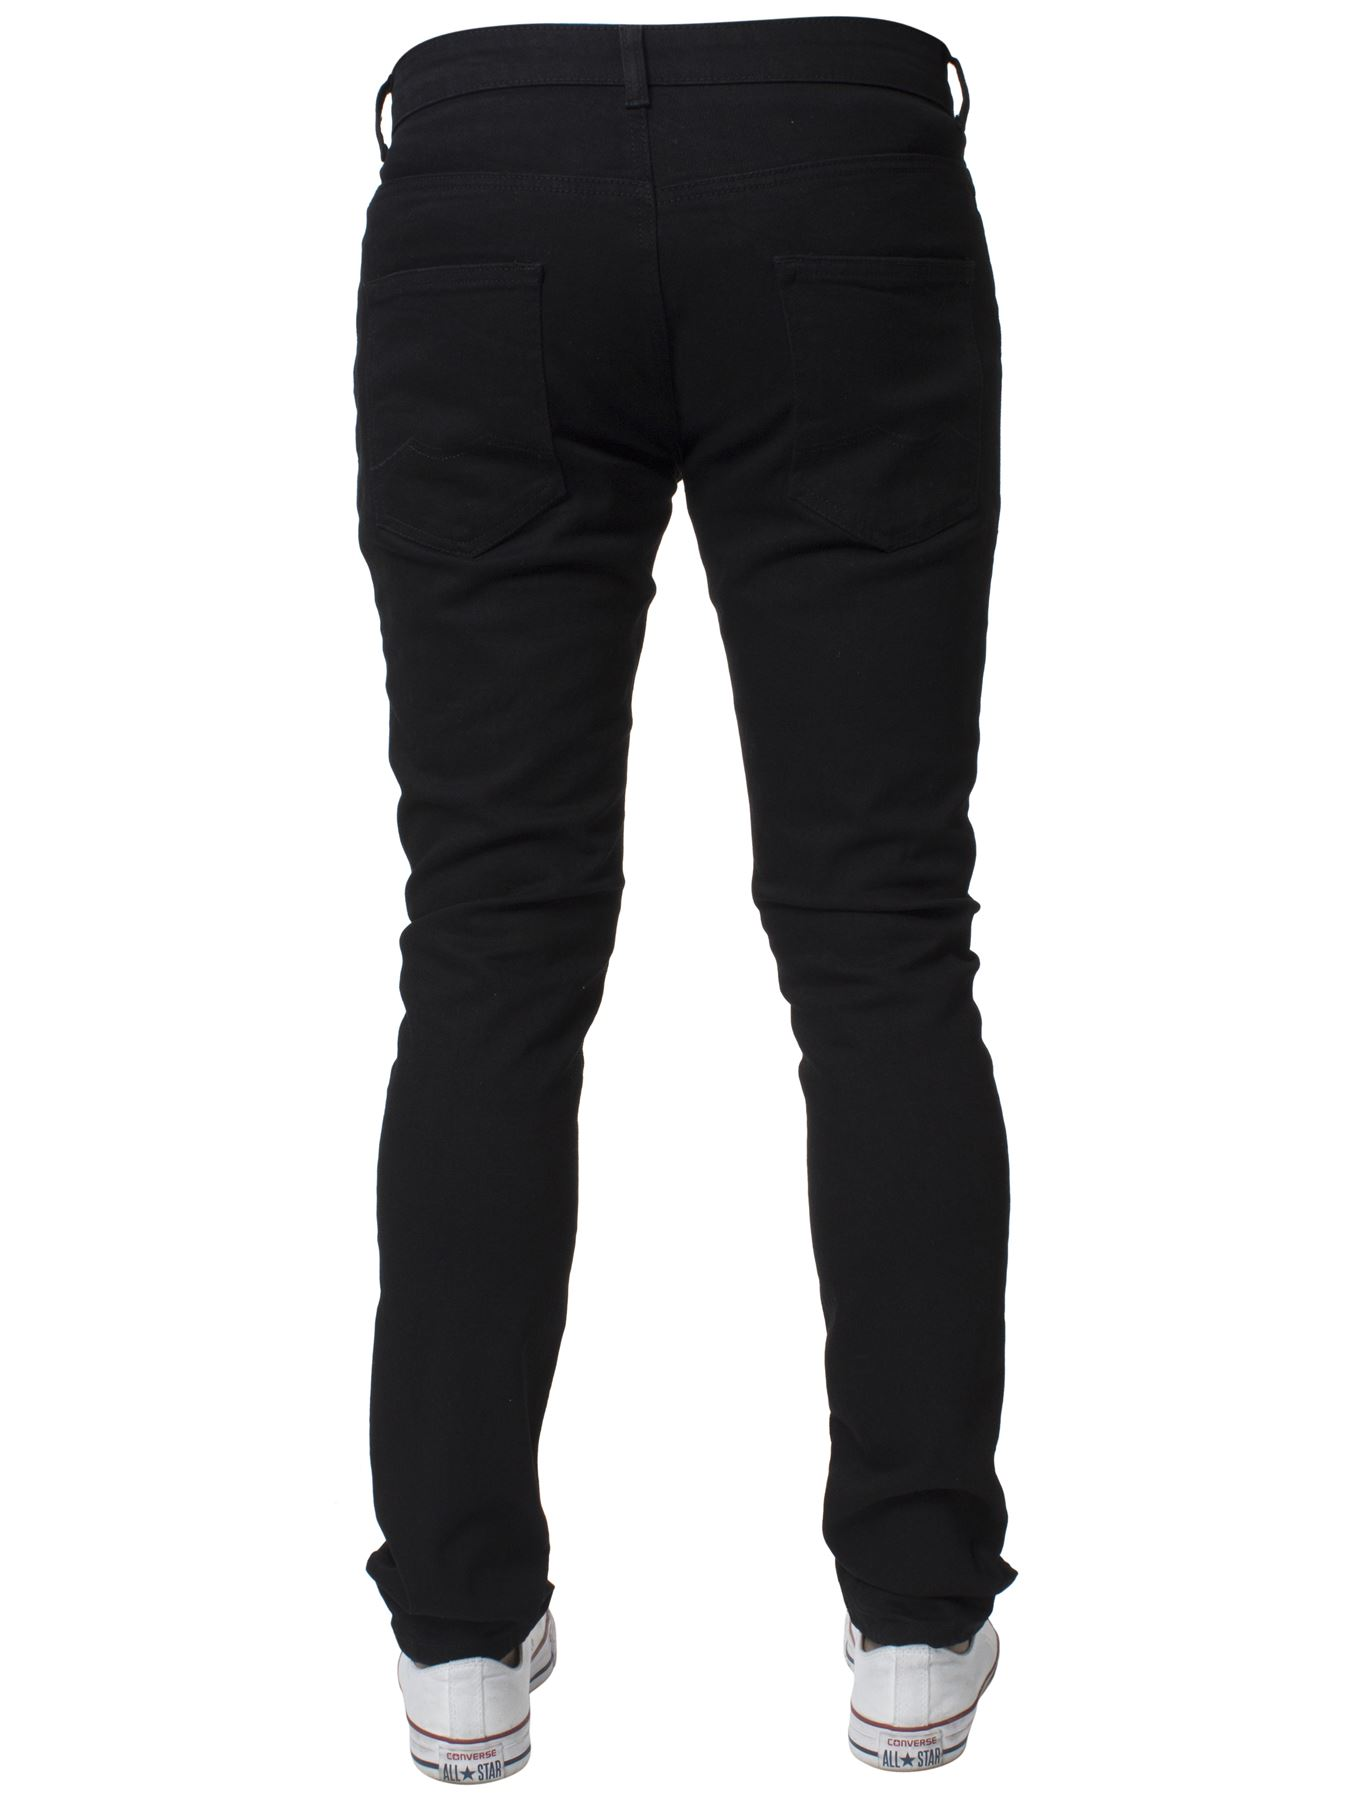 Kruze-Mens-Skinny-Stretch-Flex-Denim-Jeans-Slim-Fit-Trouser-Pants-Big-King-Sizes thumbnail 6